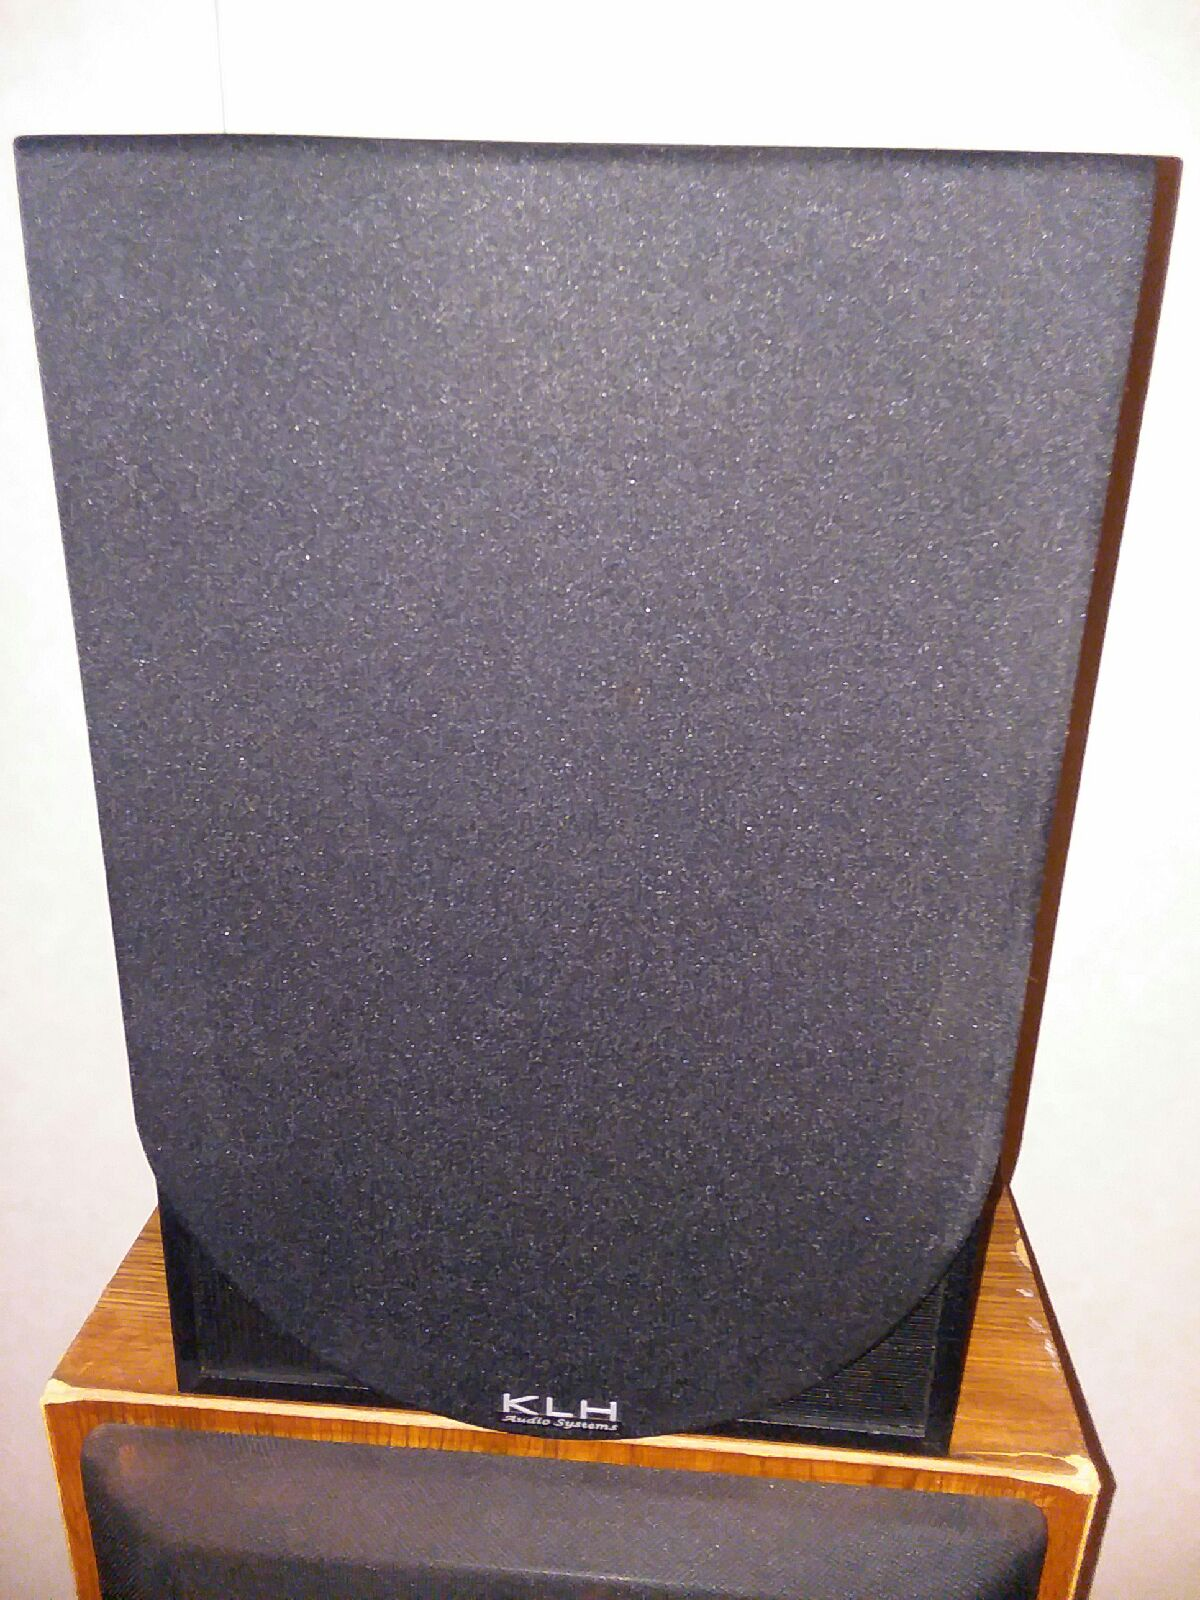 Vintage KLH 3-way shelf or floor speaker